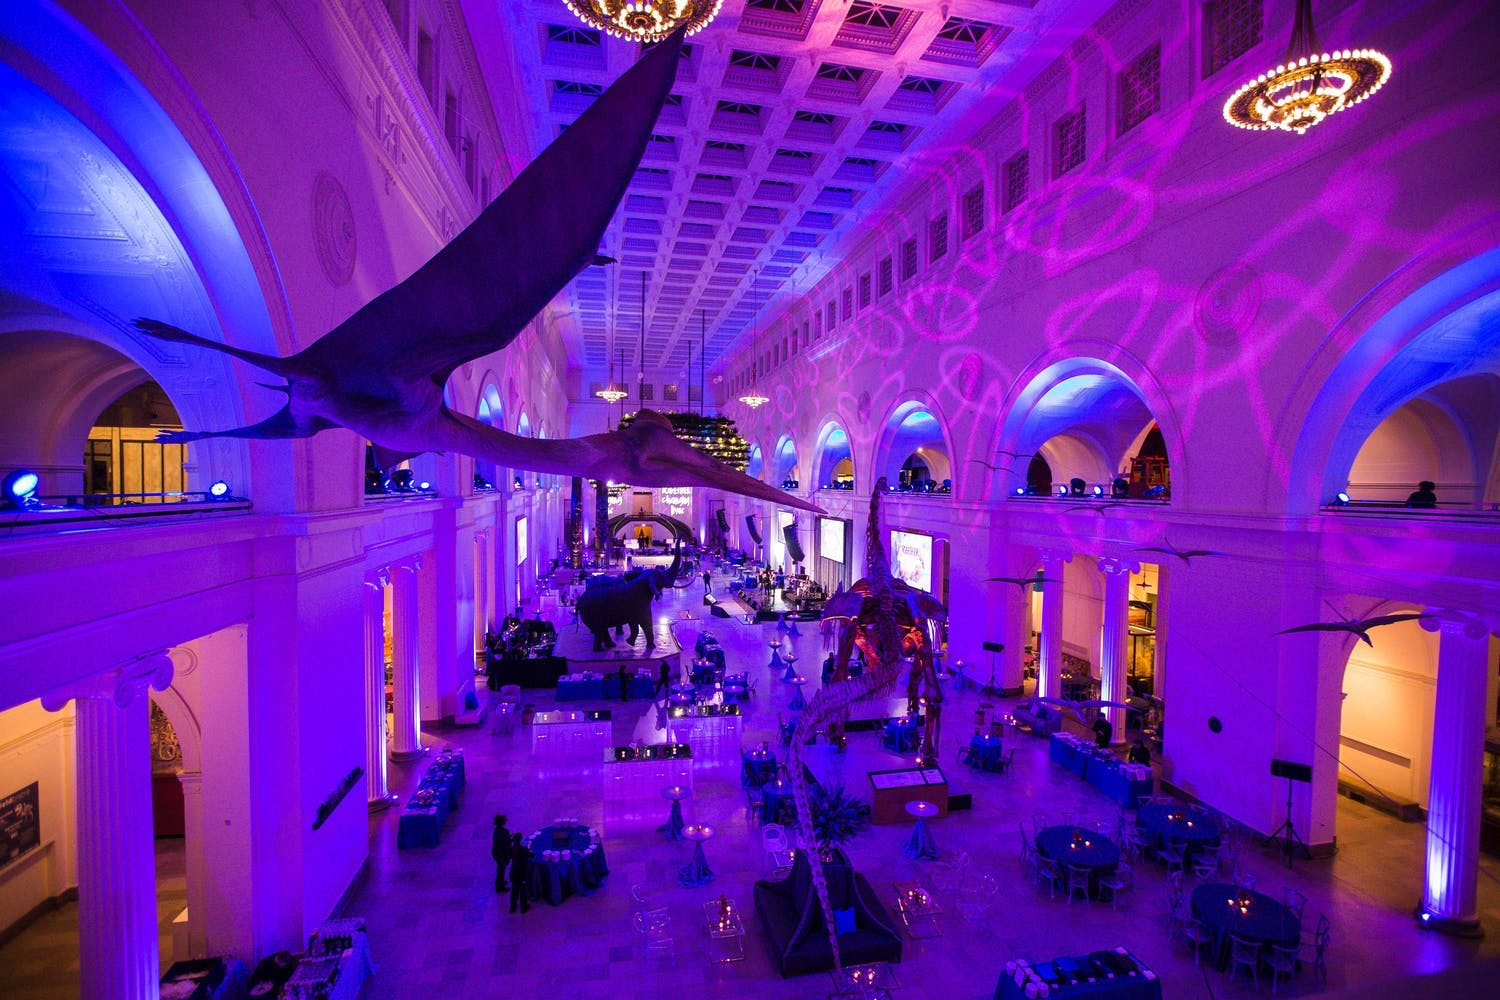 Corporate event at Field Museum's Stanley Hall with flying pterosaurs and purple uplighting | PartySlate